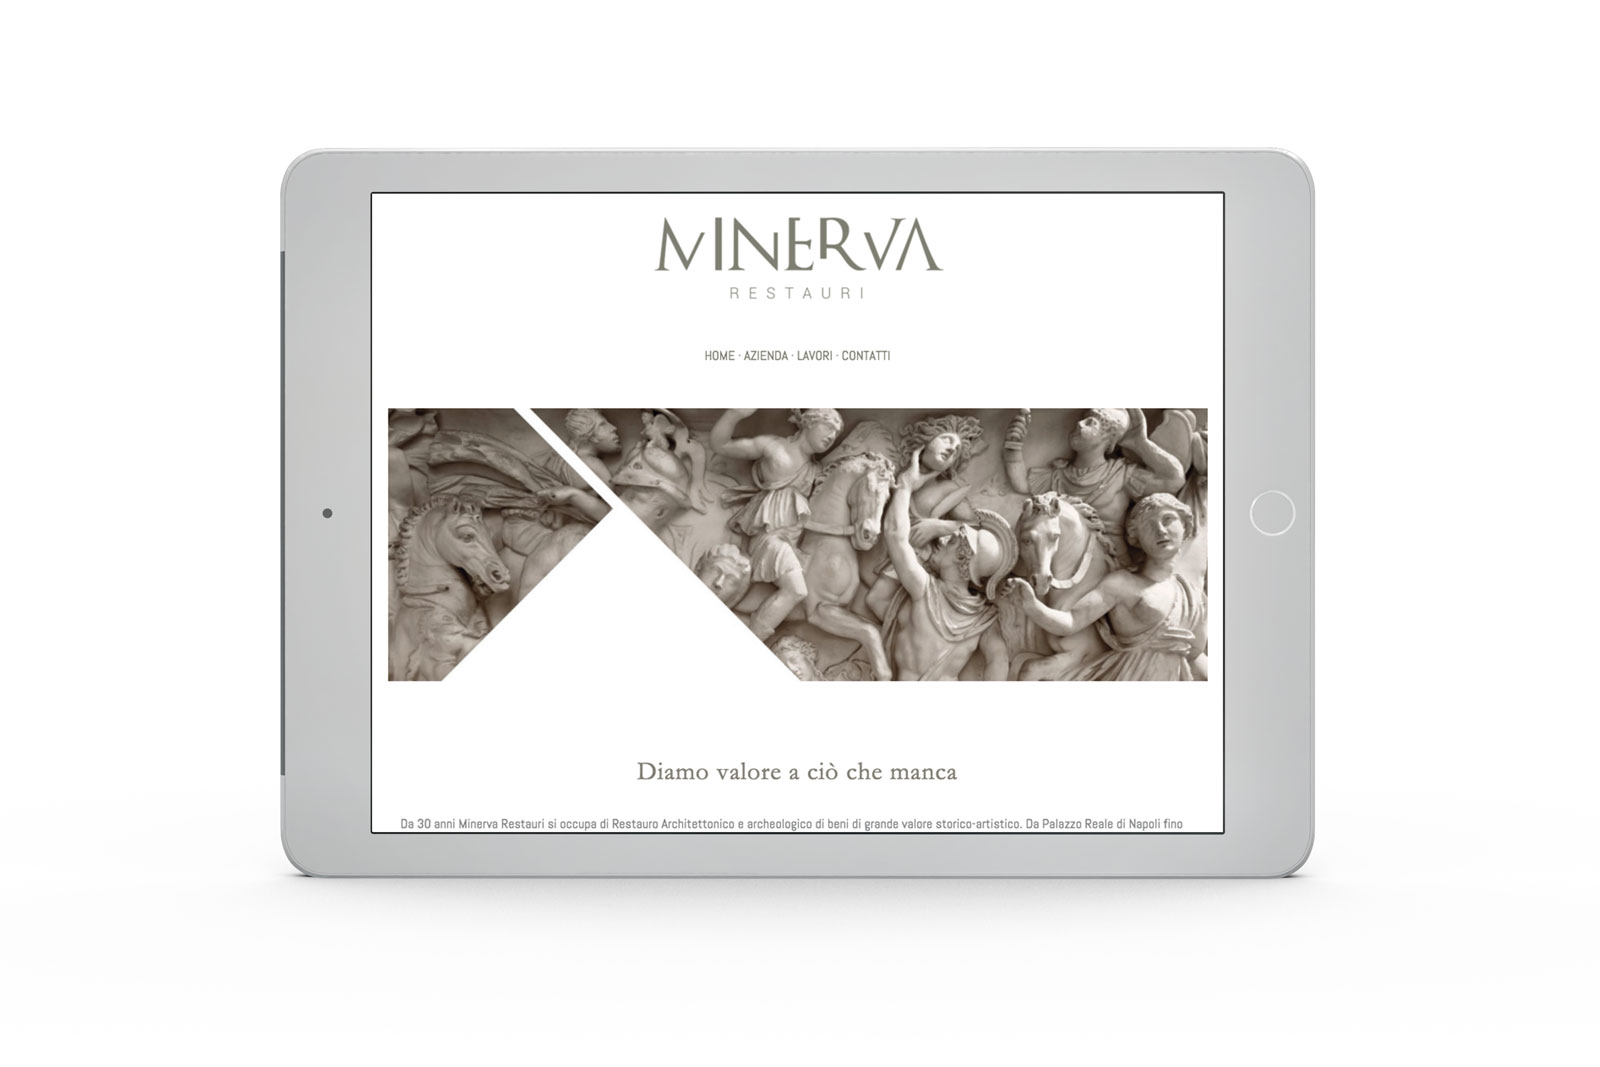 minervarestaurisrl.it